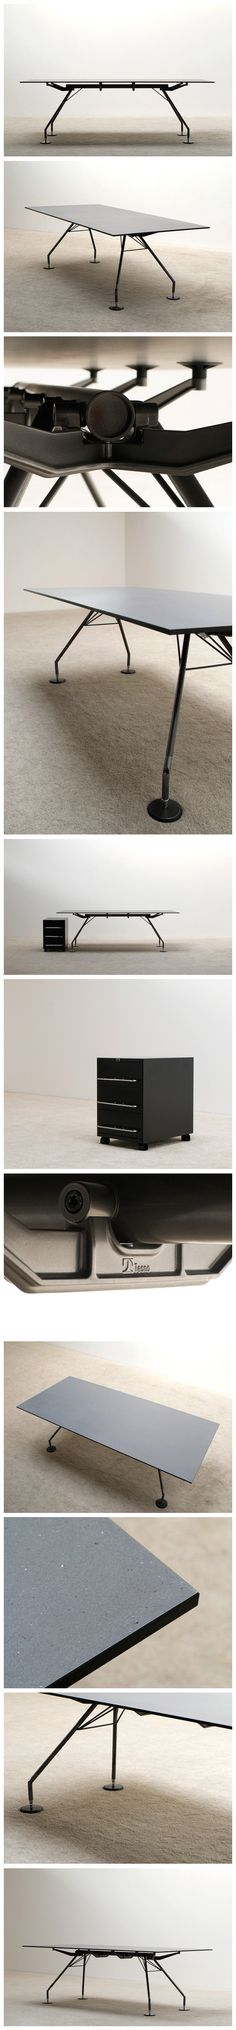 Norman Foster Nomos industrial table for Tecno Large